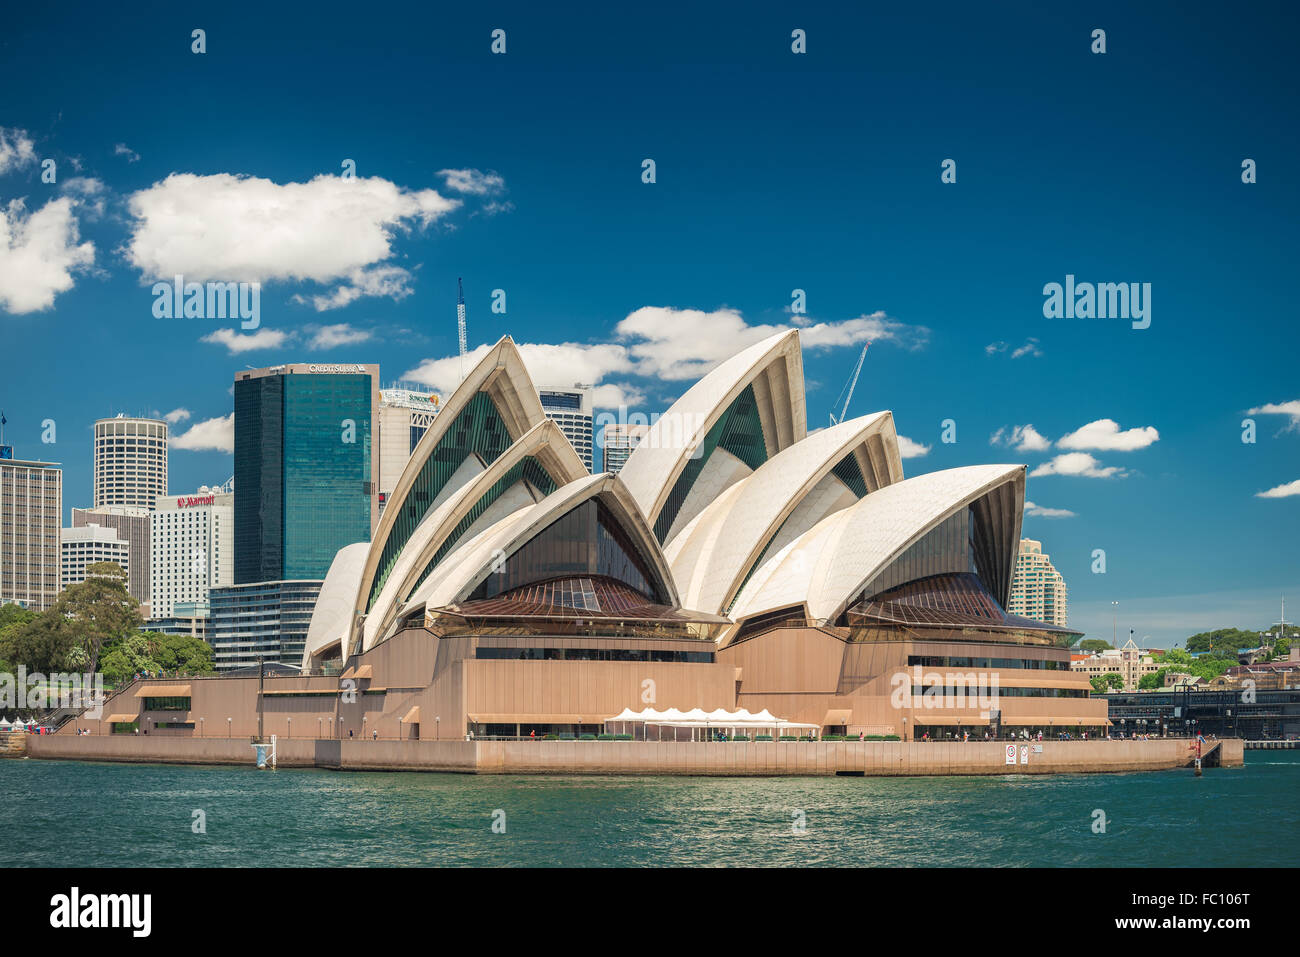 Sydney, Australien - 9. November 2015: The Sydney ist ein Multi-Veranstaltungsort Performing Arts Center. Stockfoto